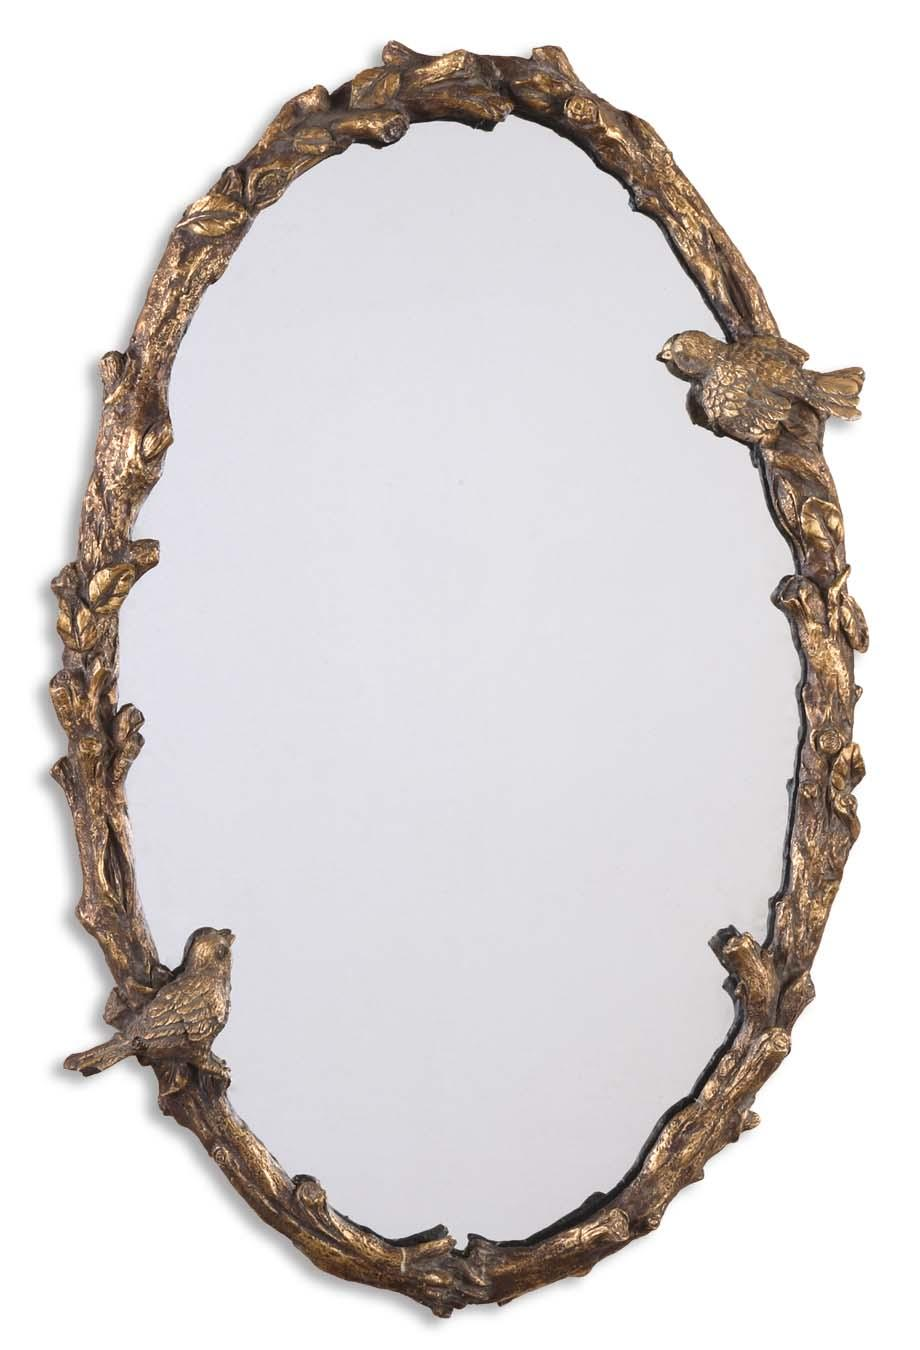 Uttermost Mirrors Paza Oval Mirror - Item Number: 13575 P